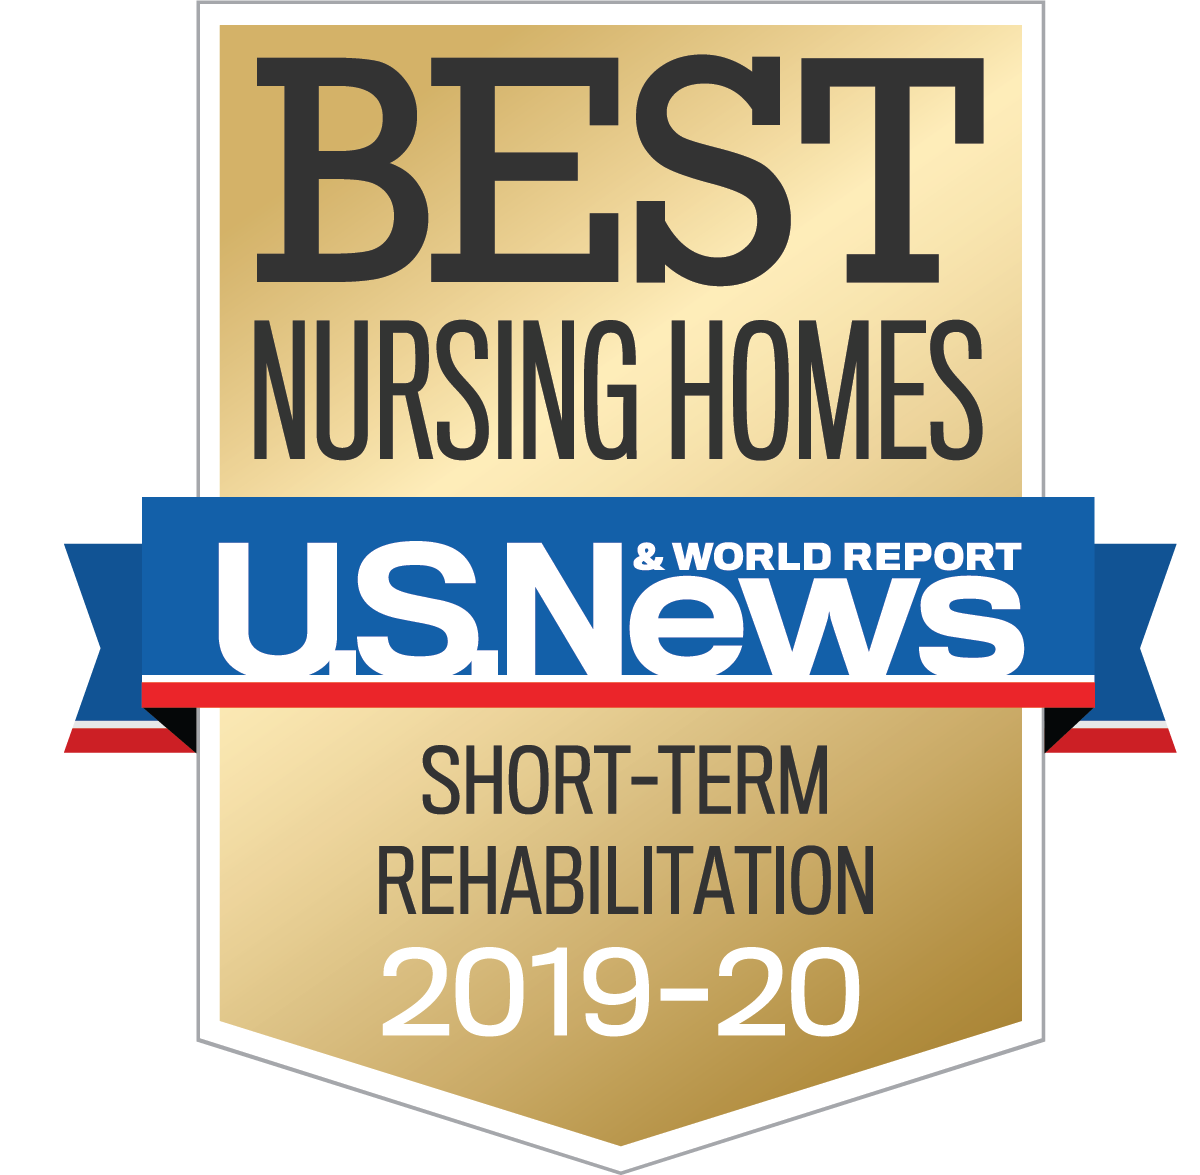 U.S. News & World Report Best Nursing Homes 2019-2020